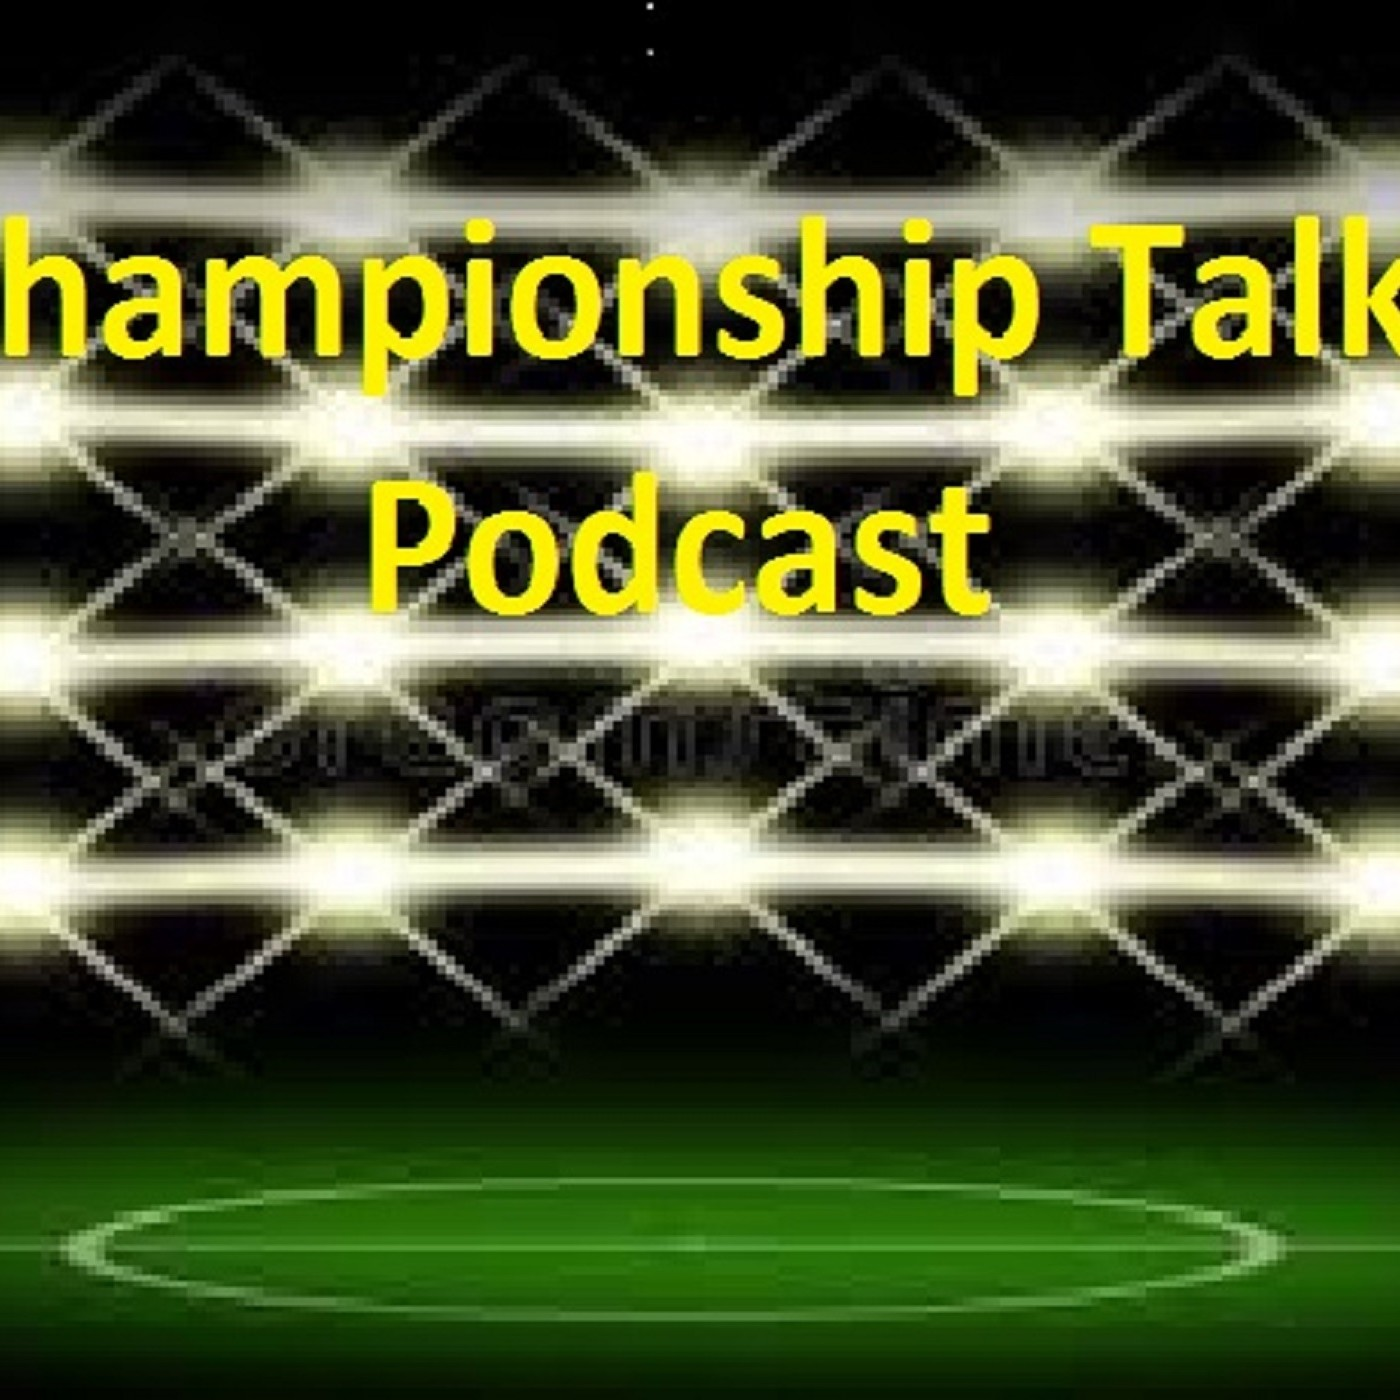 Championship Talk Podcast -Game day 5 review